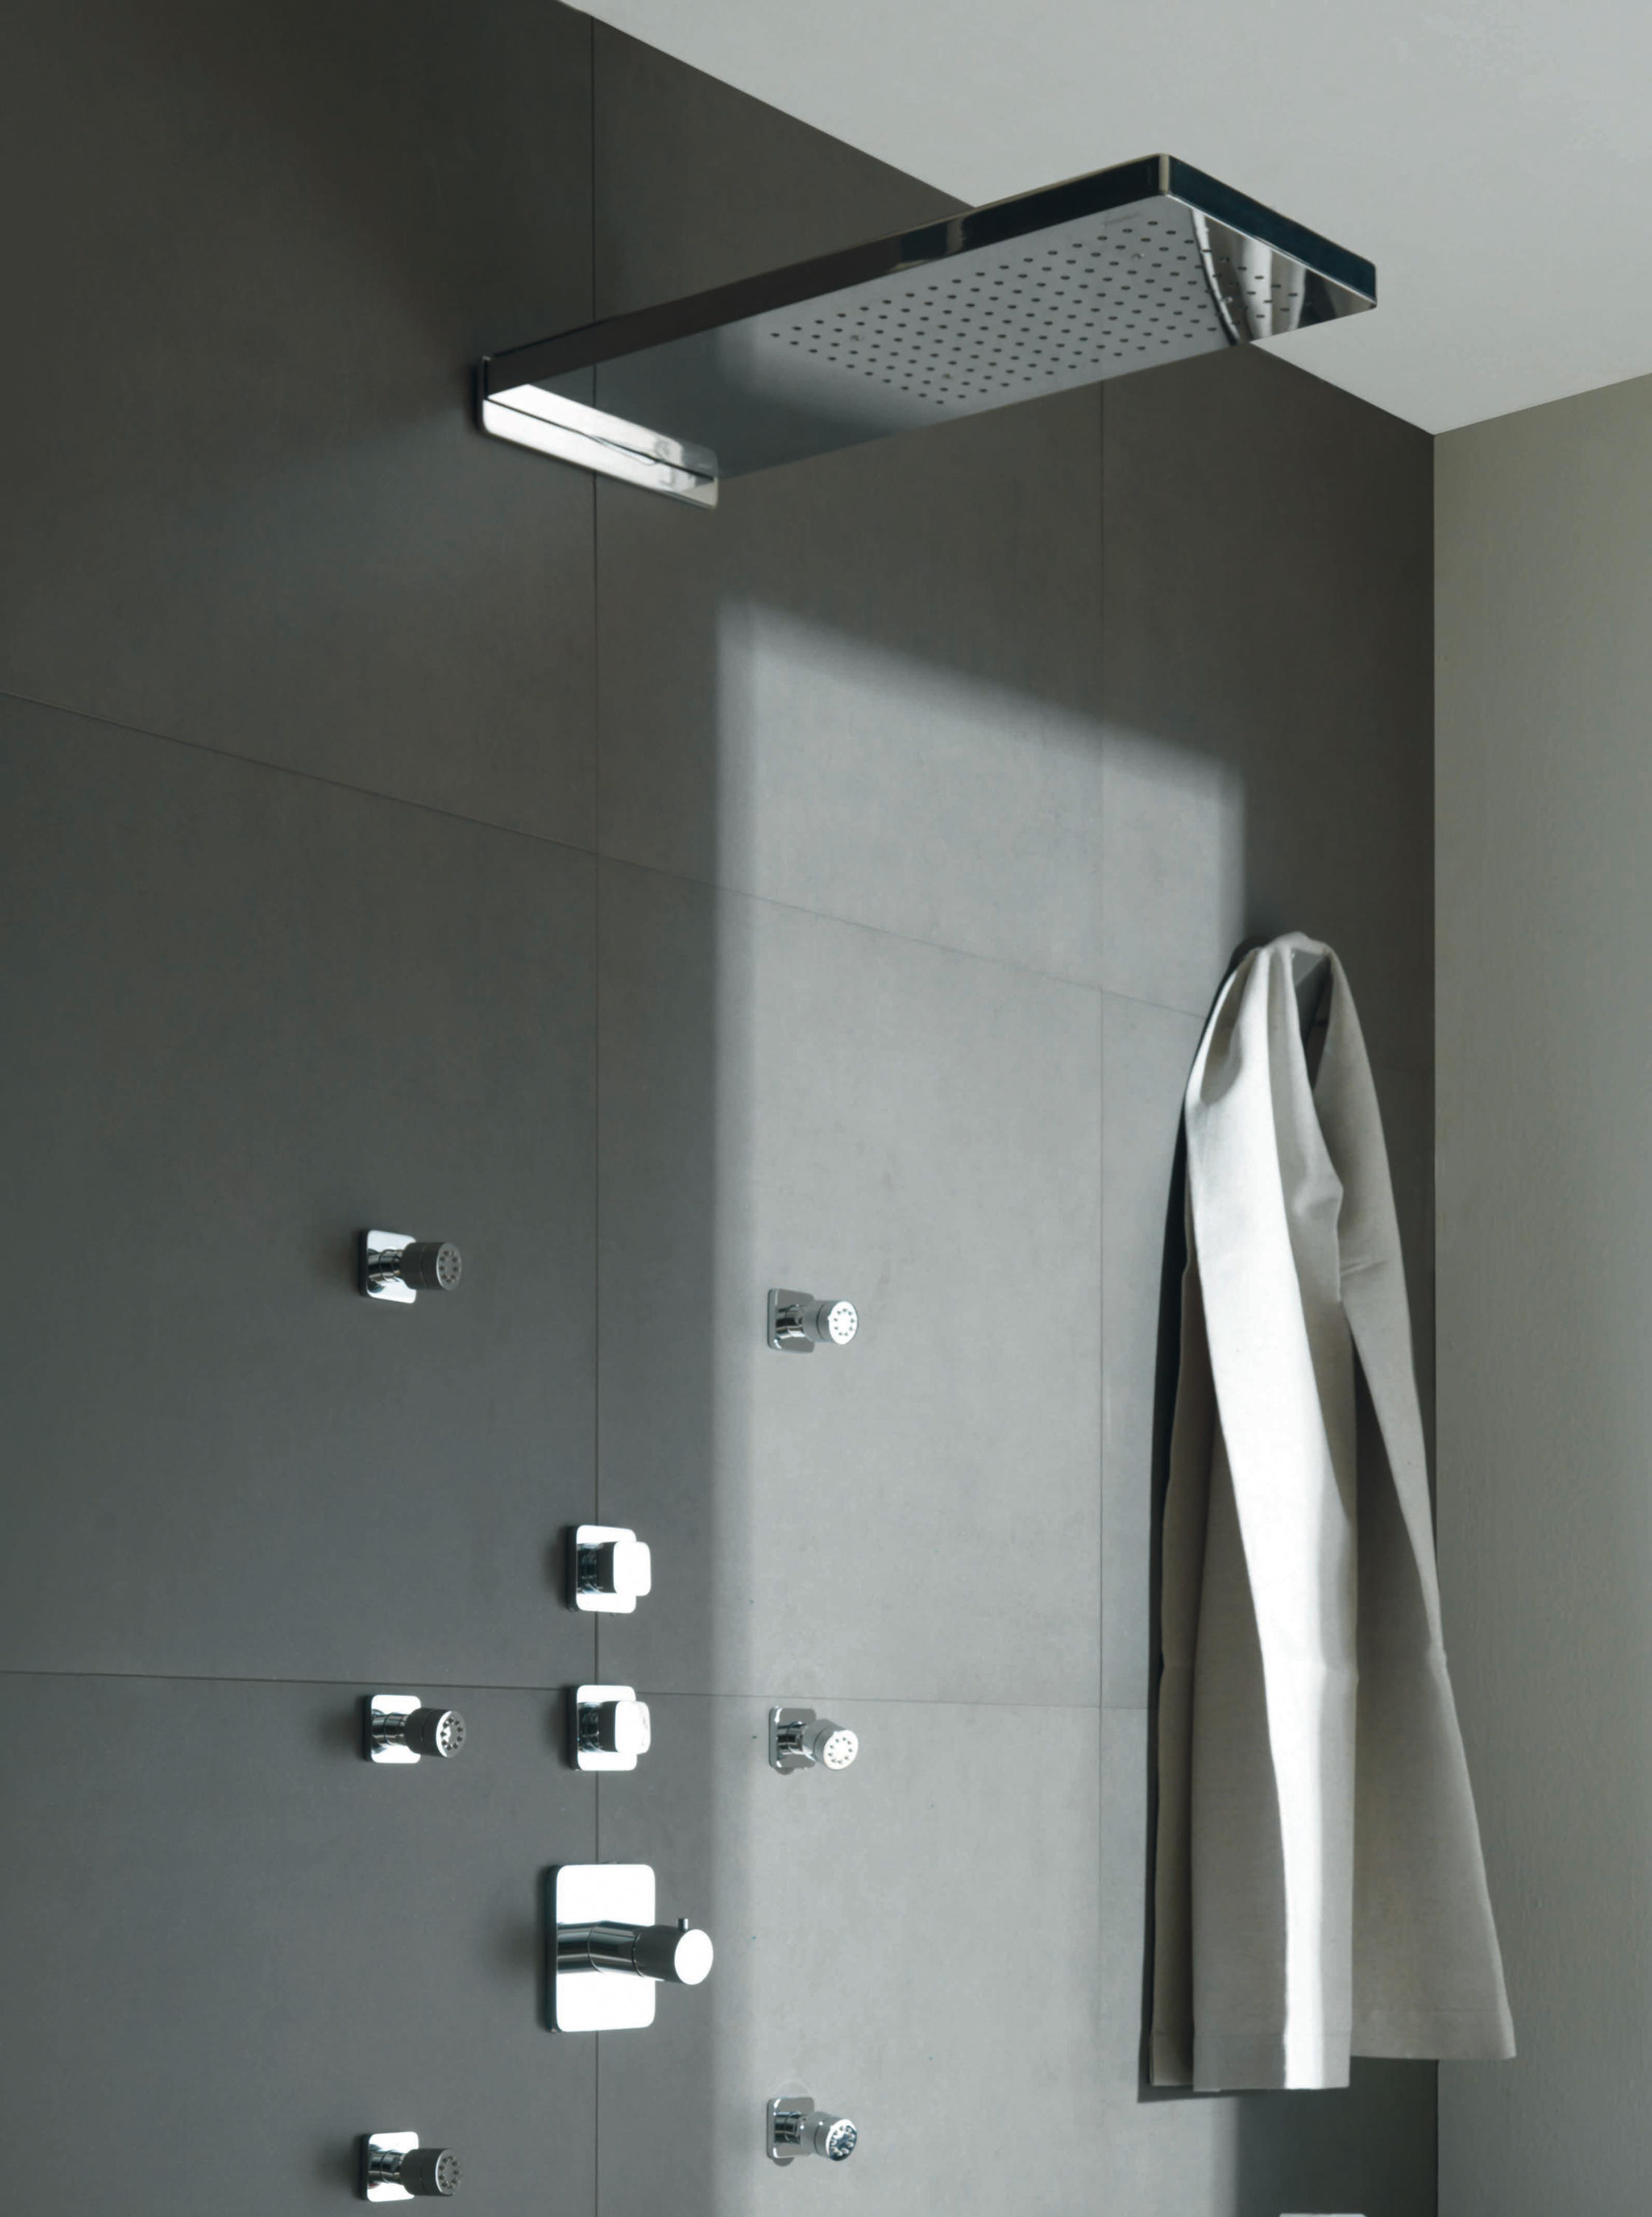 showers z93096 shower taps mixers from zucchetti architonic. Black Bedroom Furniture Sets. Home Design Ideas